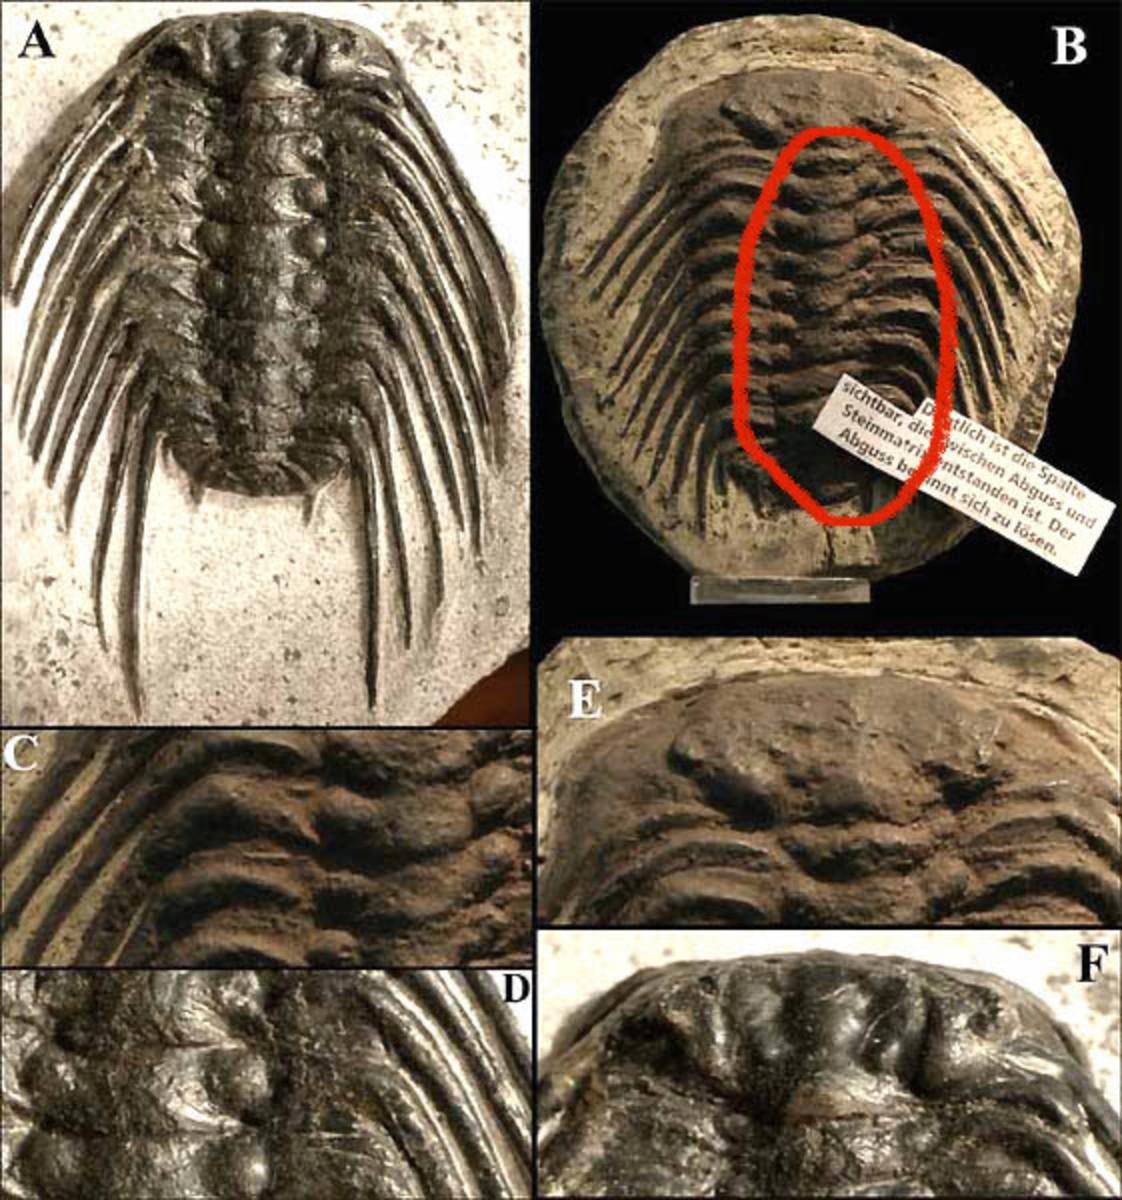 Comparison between an authentic trilobite fossil and a fake one. The specimen shown in images B, C, and E is fake. Note the crooked, asymmetrical body segments.